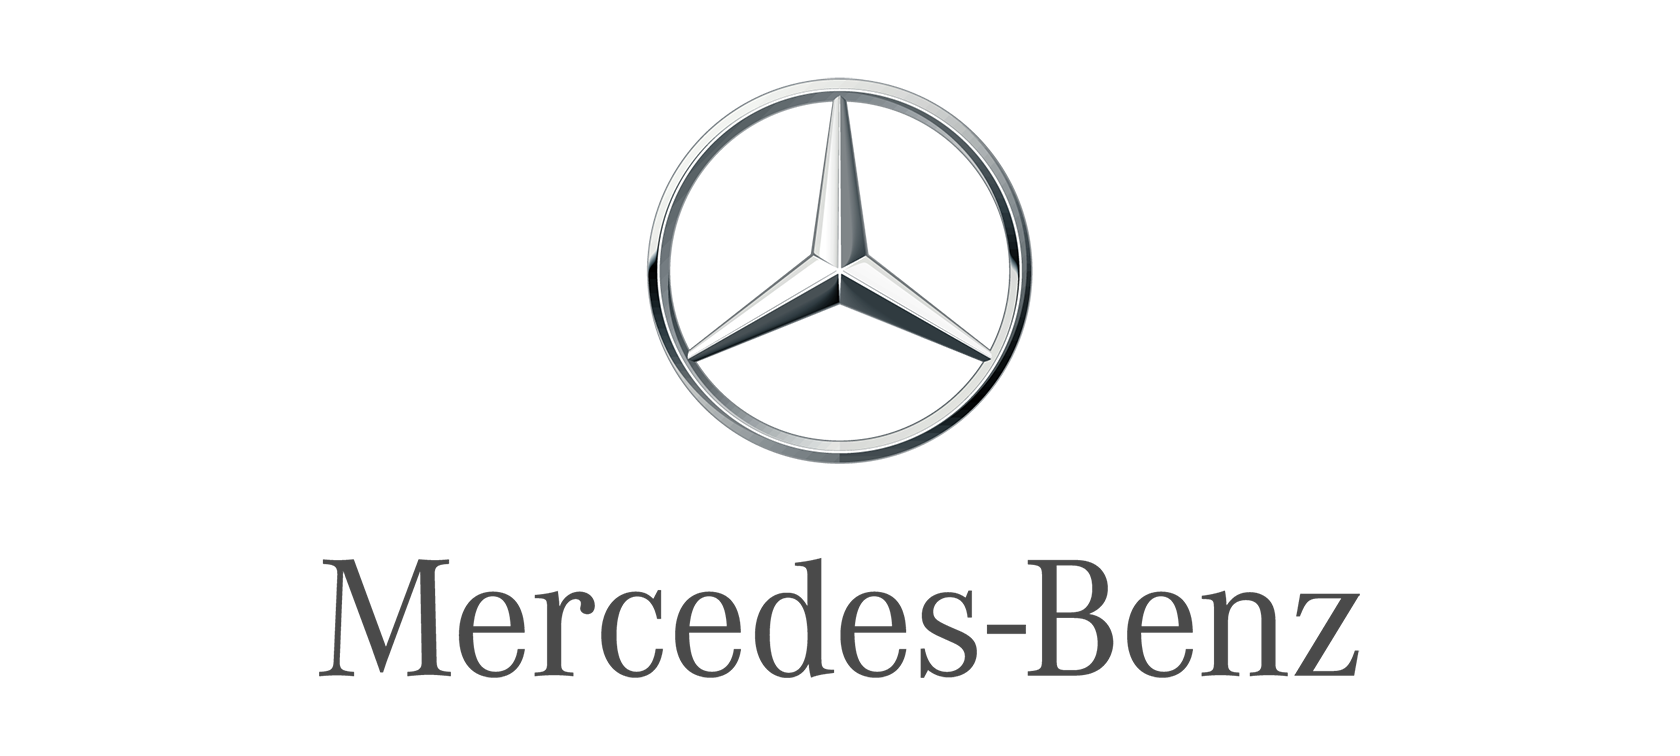 Mercedes Benz headlight lens covers and headlamps, car parts, repair, accessories